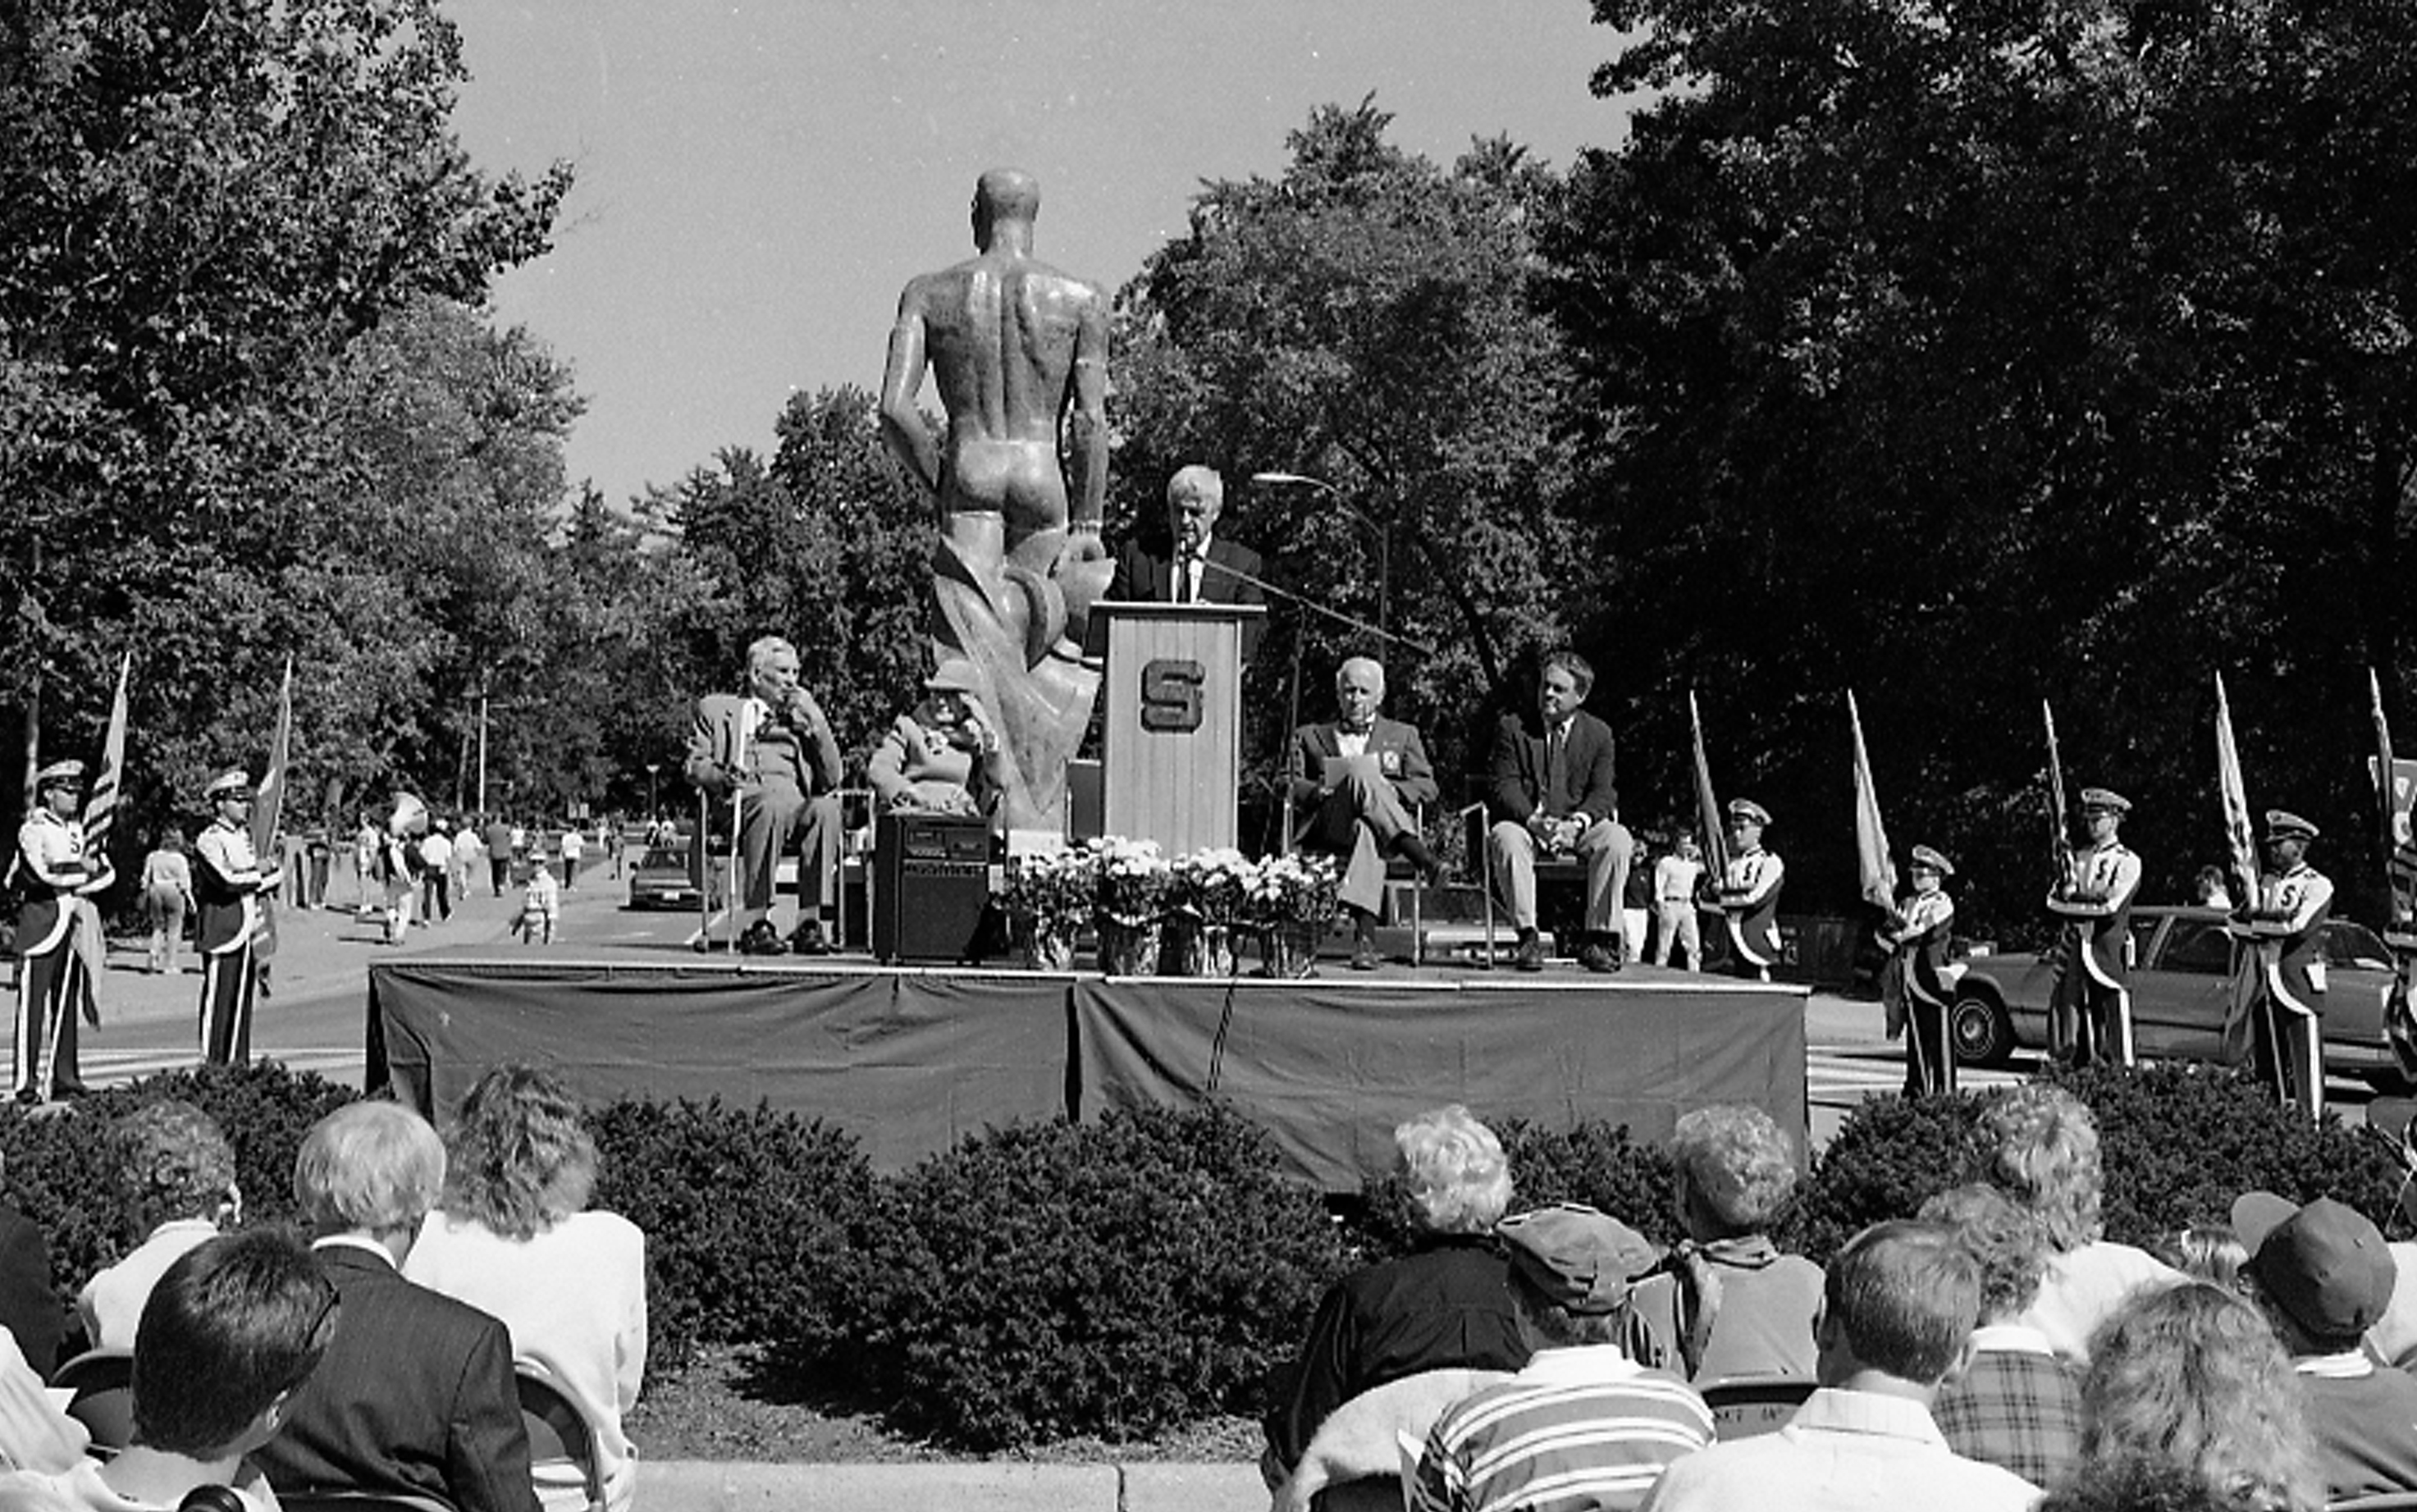 Rededication of the Sparty Statue, 1989